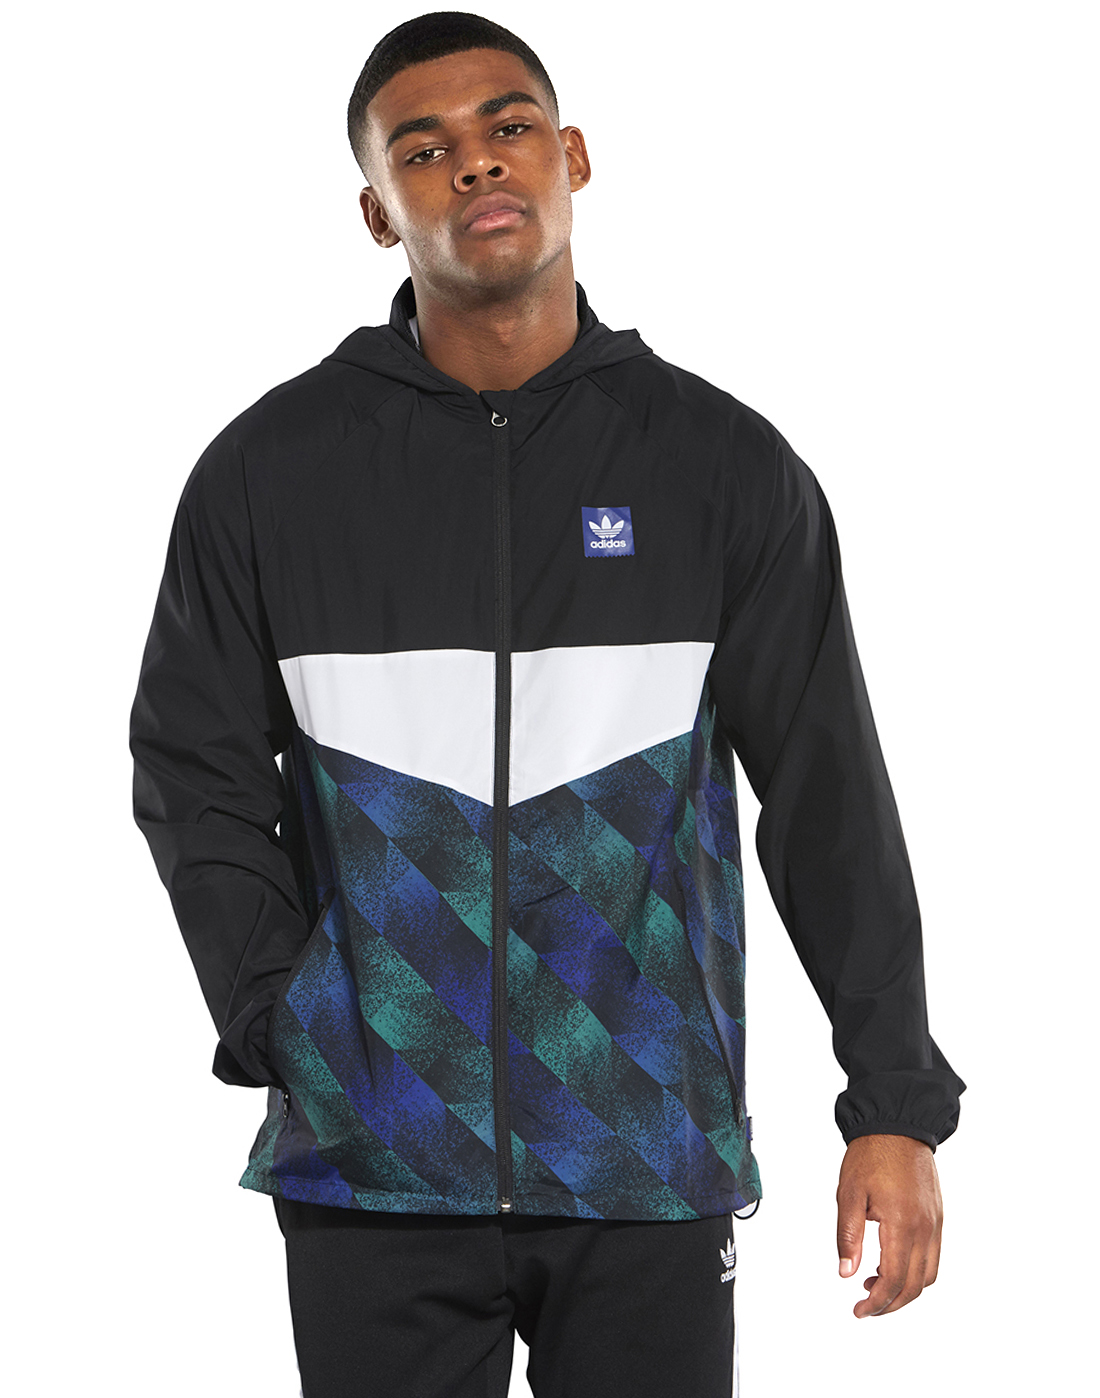 78faf8e8 Men's Black adidas Originals Towning Jacket | Life Style Sports